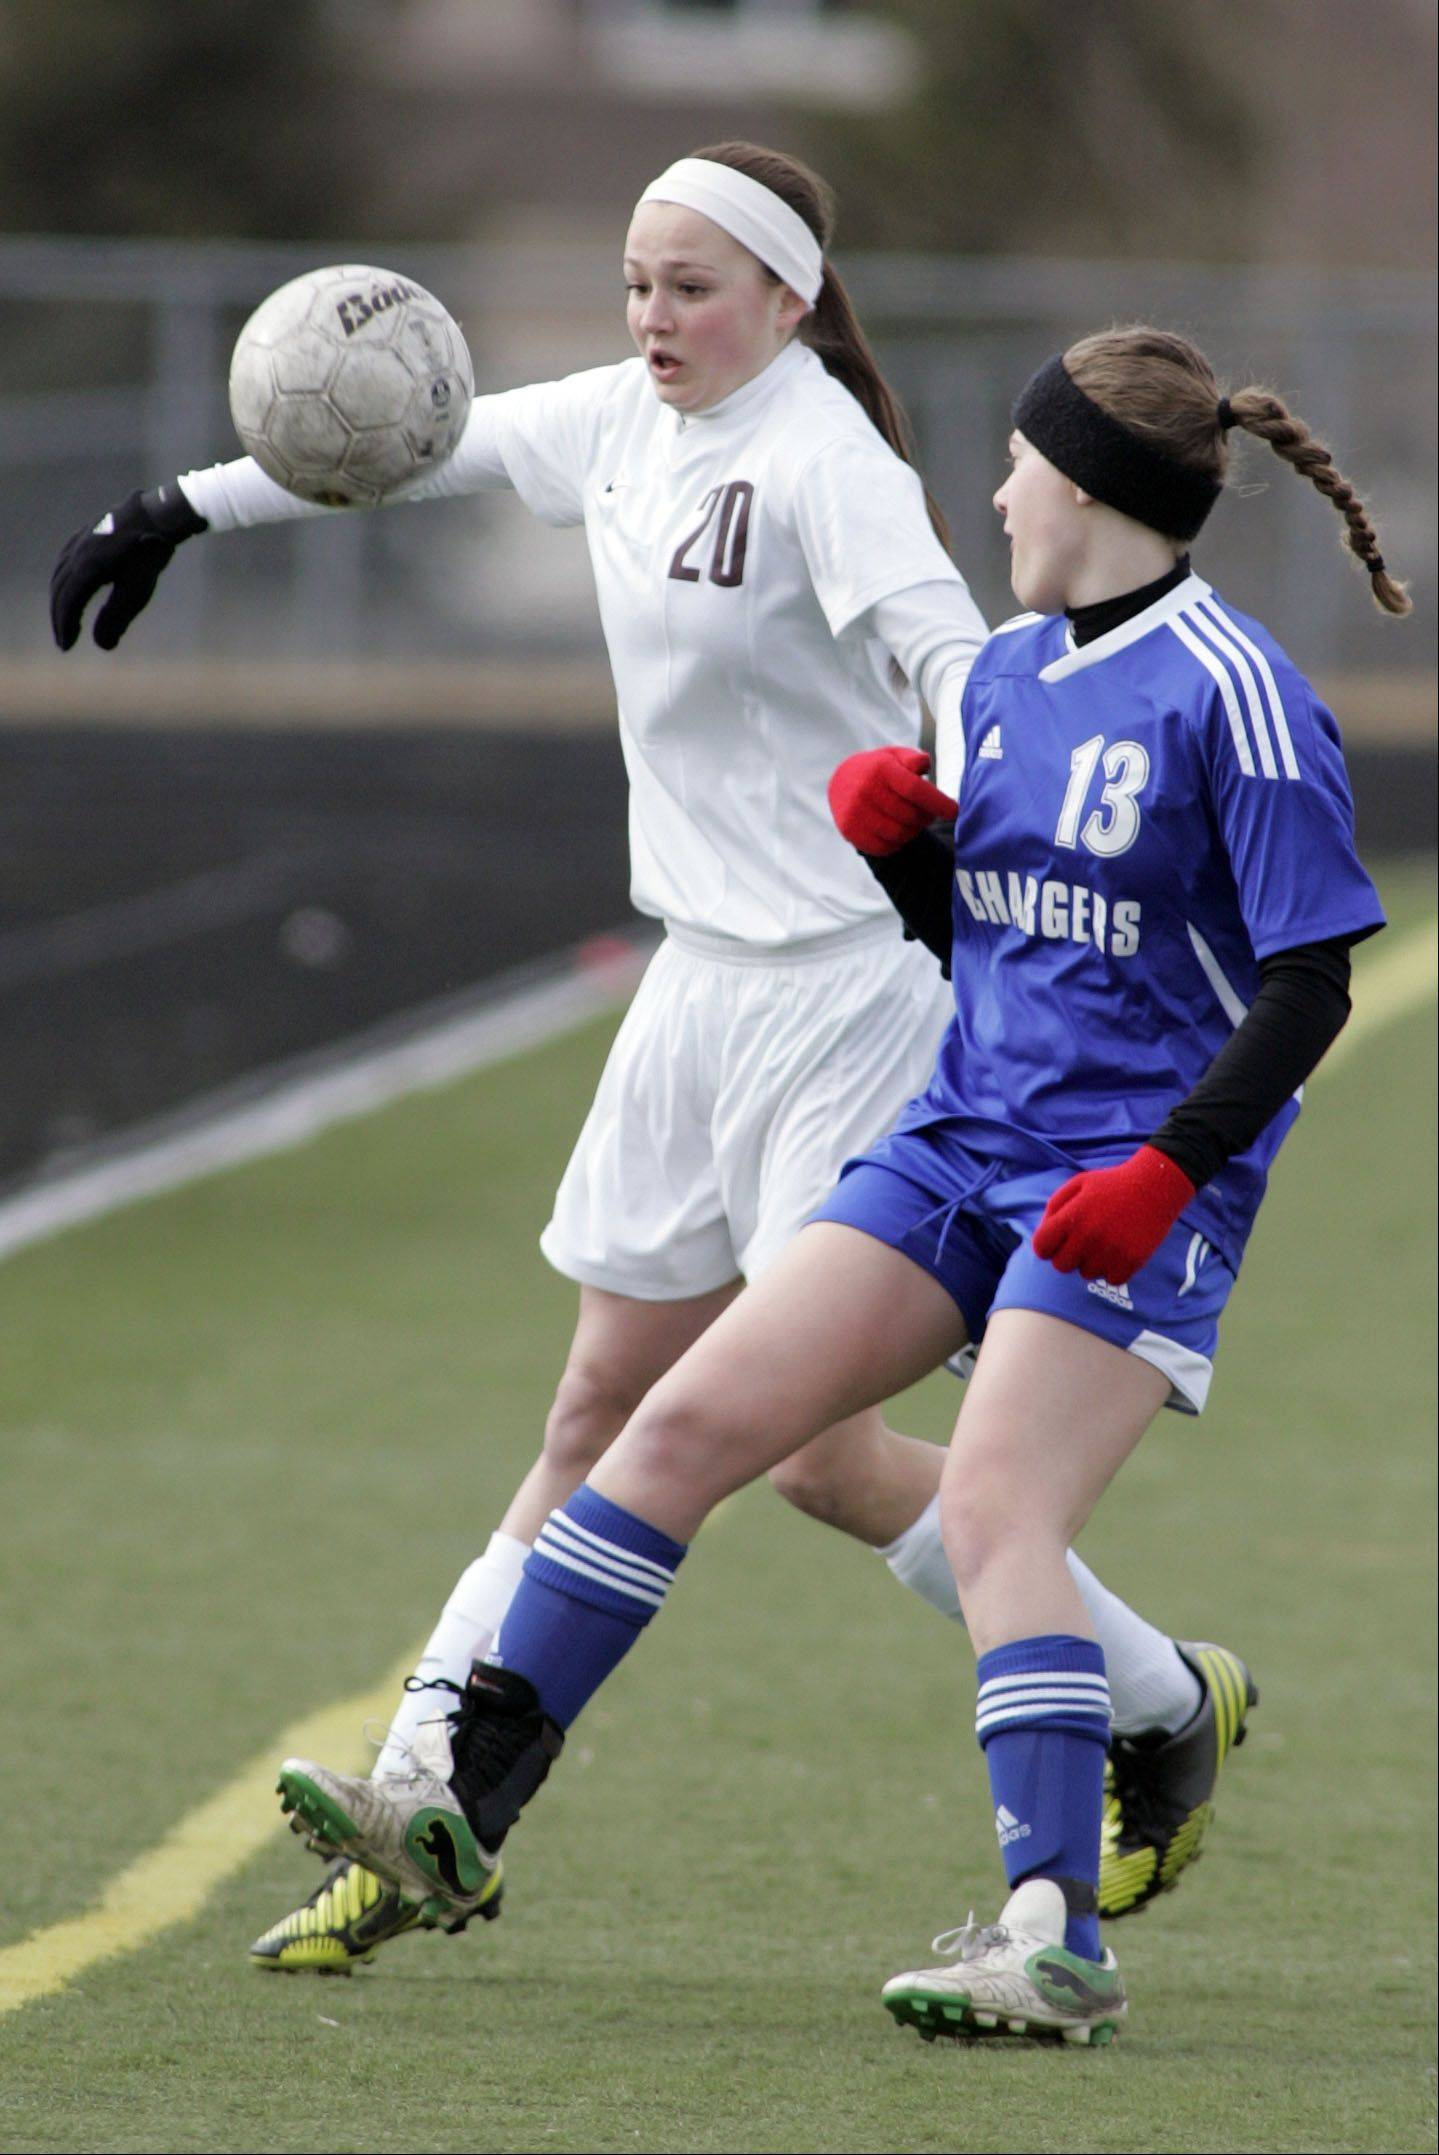 Elgin's Hannah Demel (20) battles Dundee-Crown's Cori Schrade during the South Elgin Spring Break tournament at Millennium Field in Streamwood Wednesday.